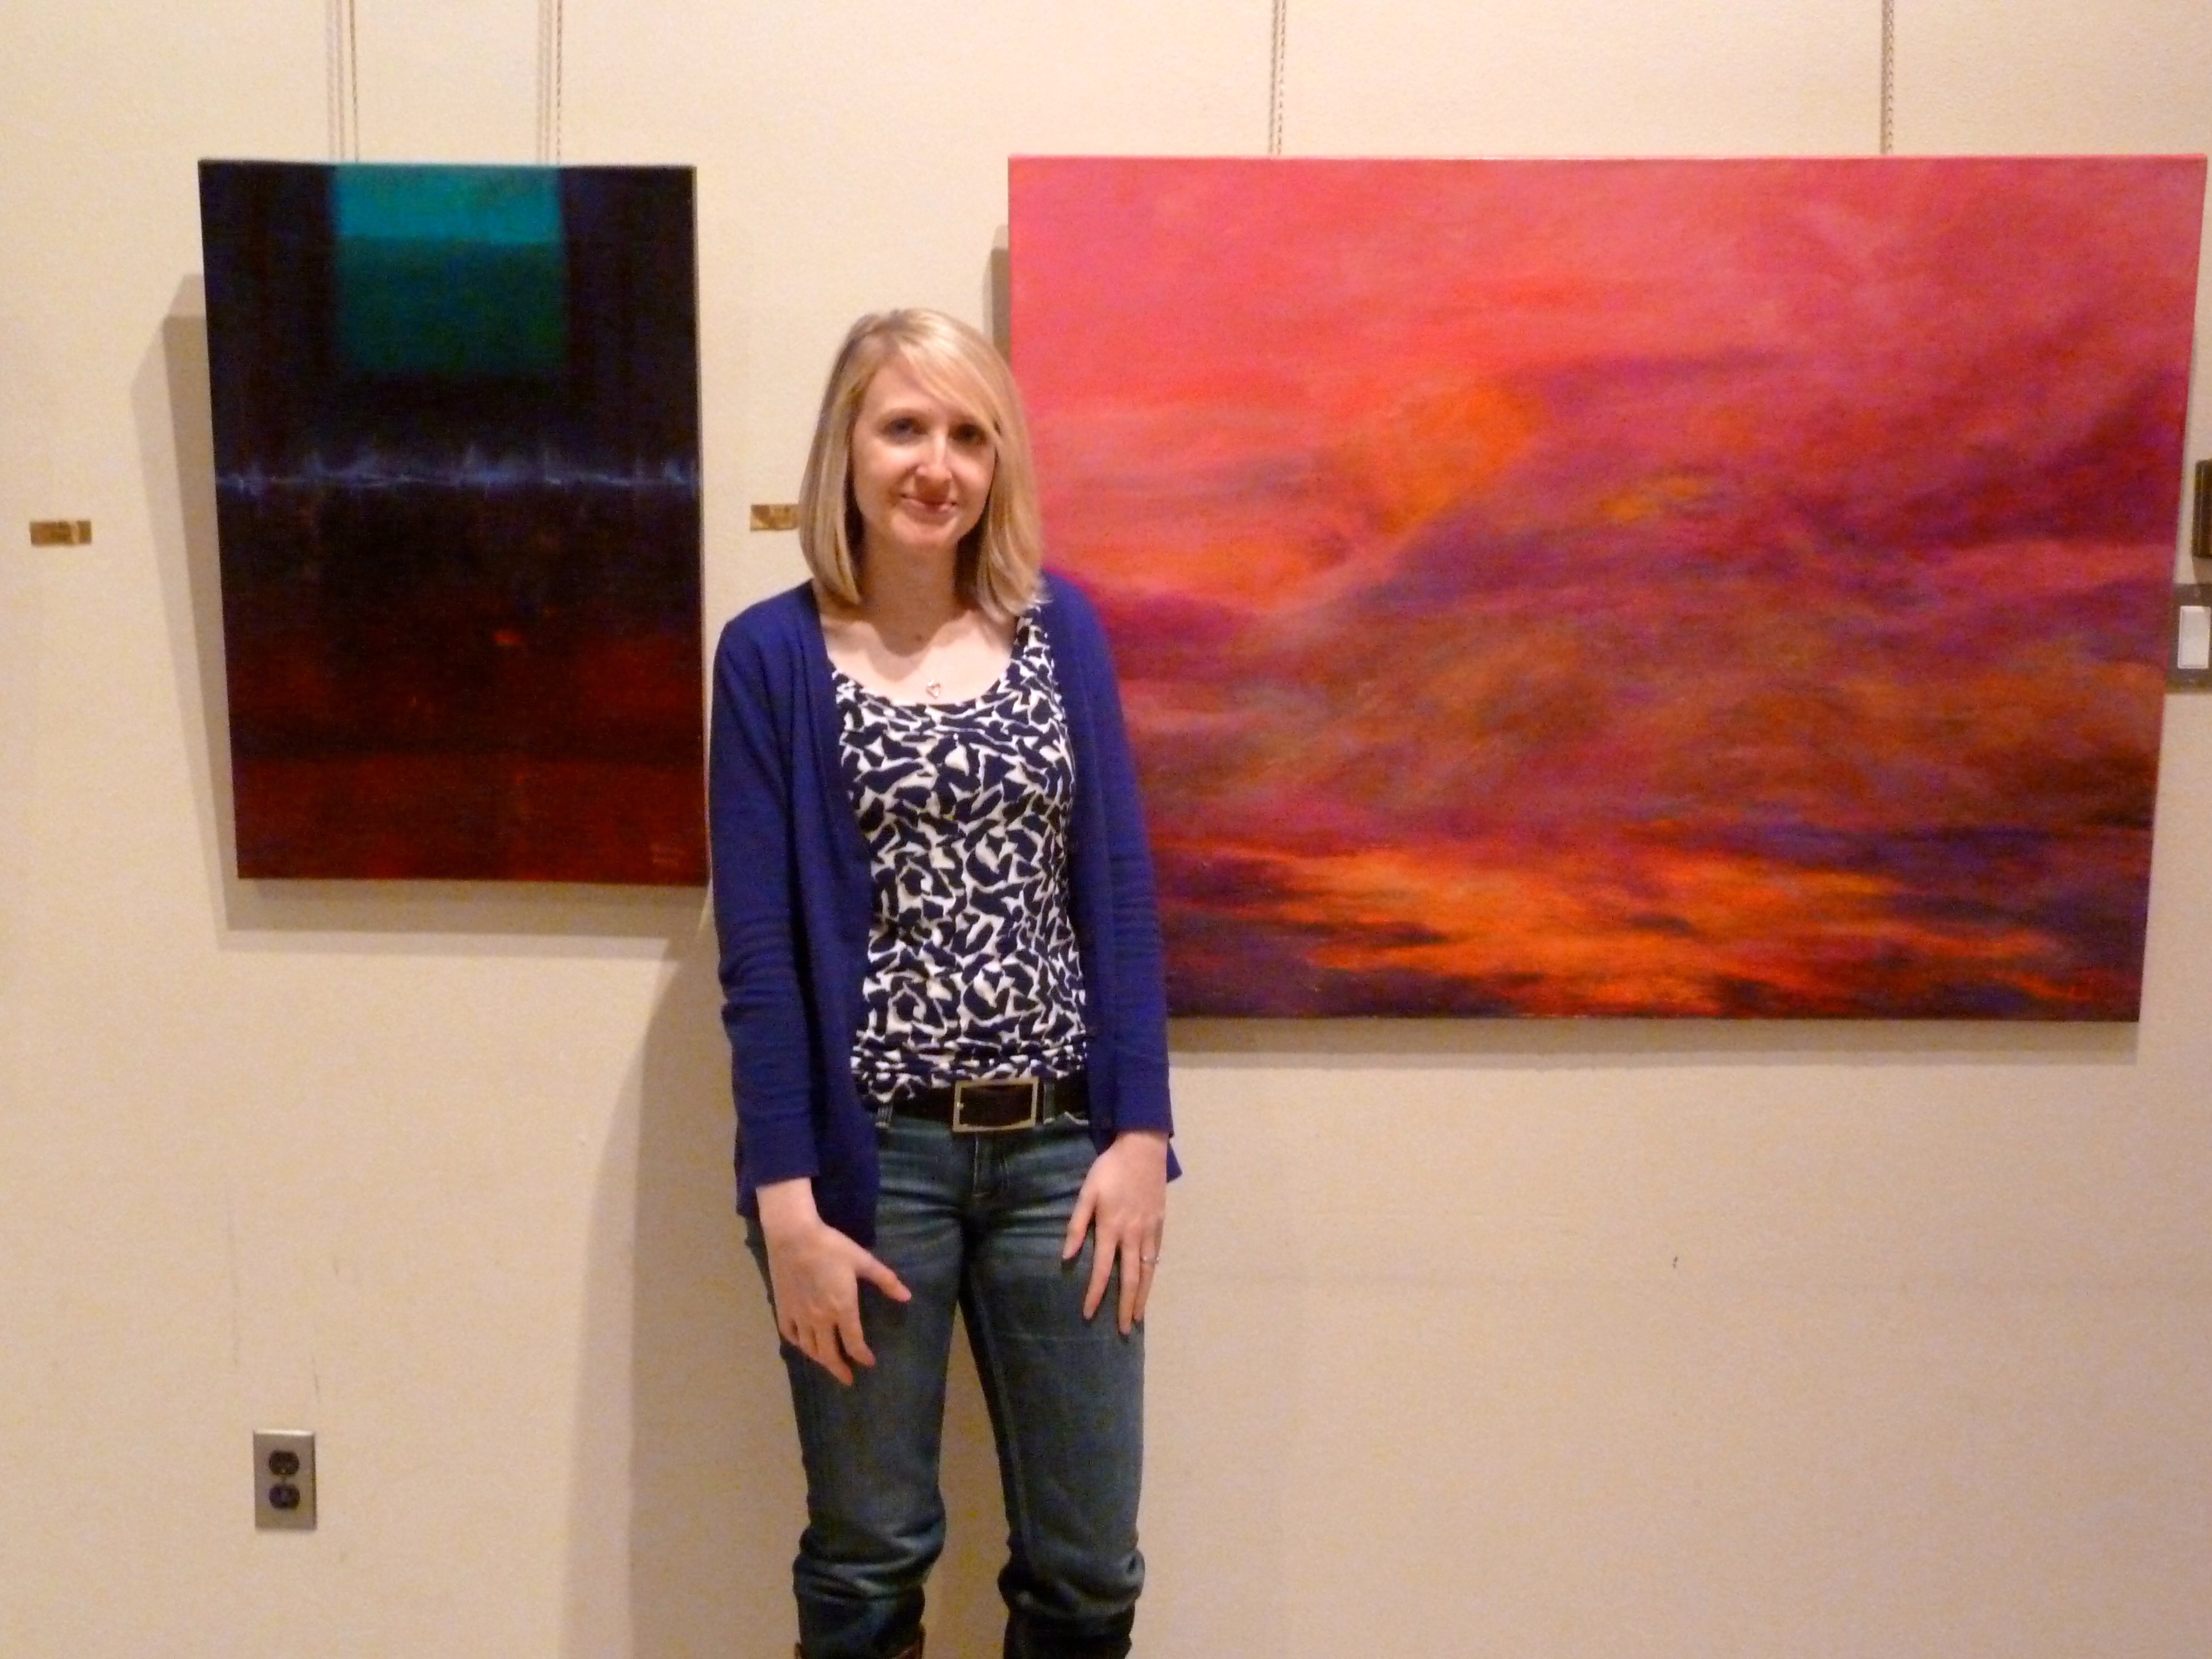 Me at Aunt Jeanne's art show